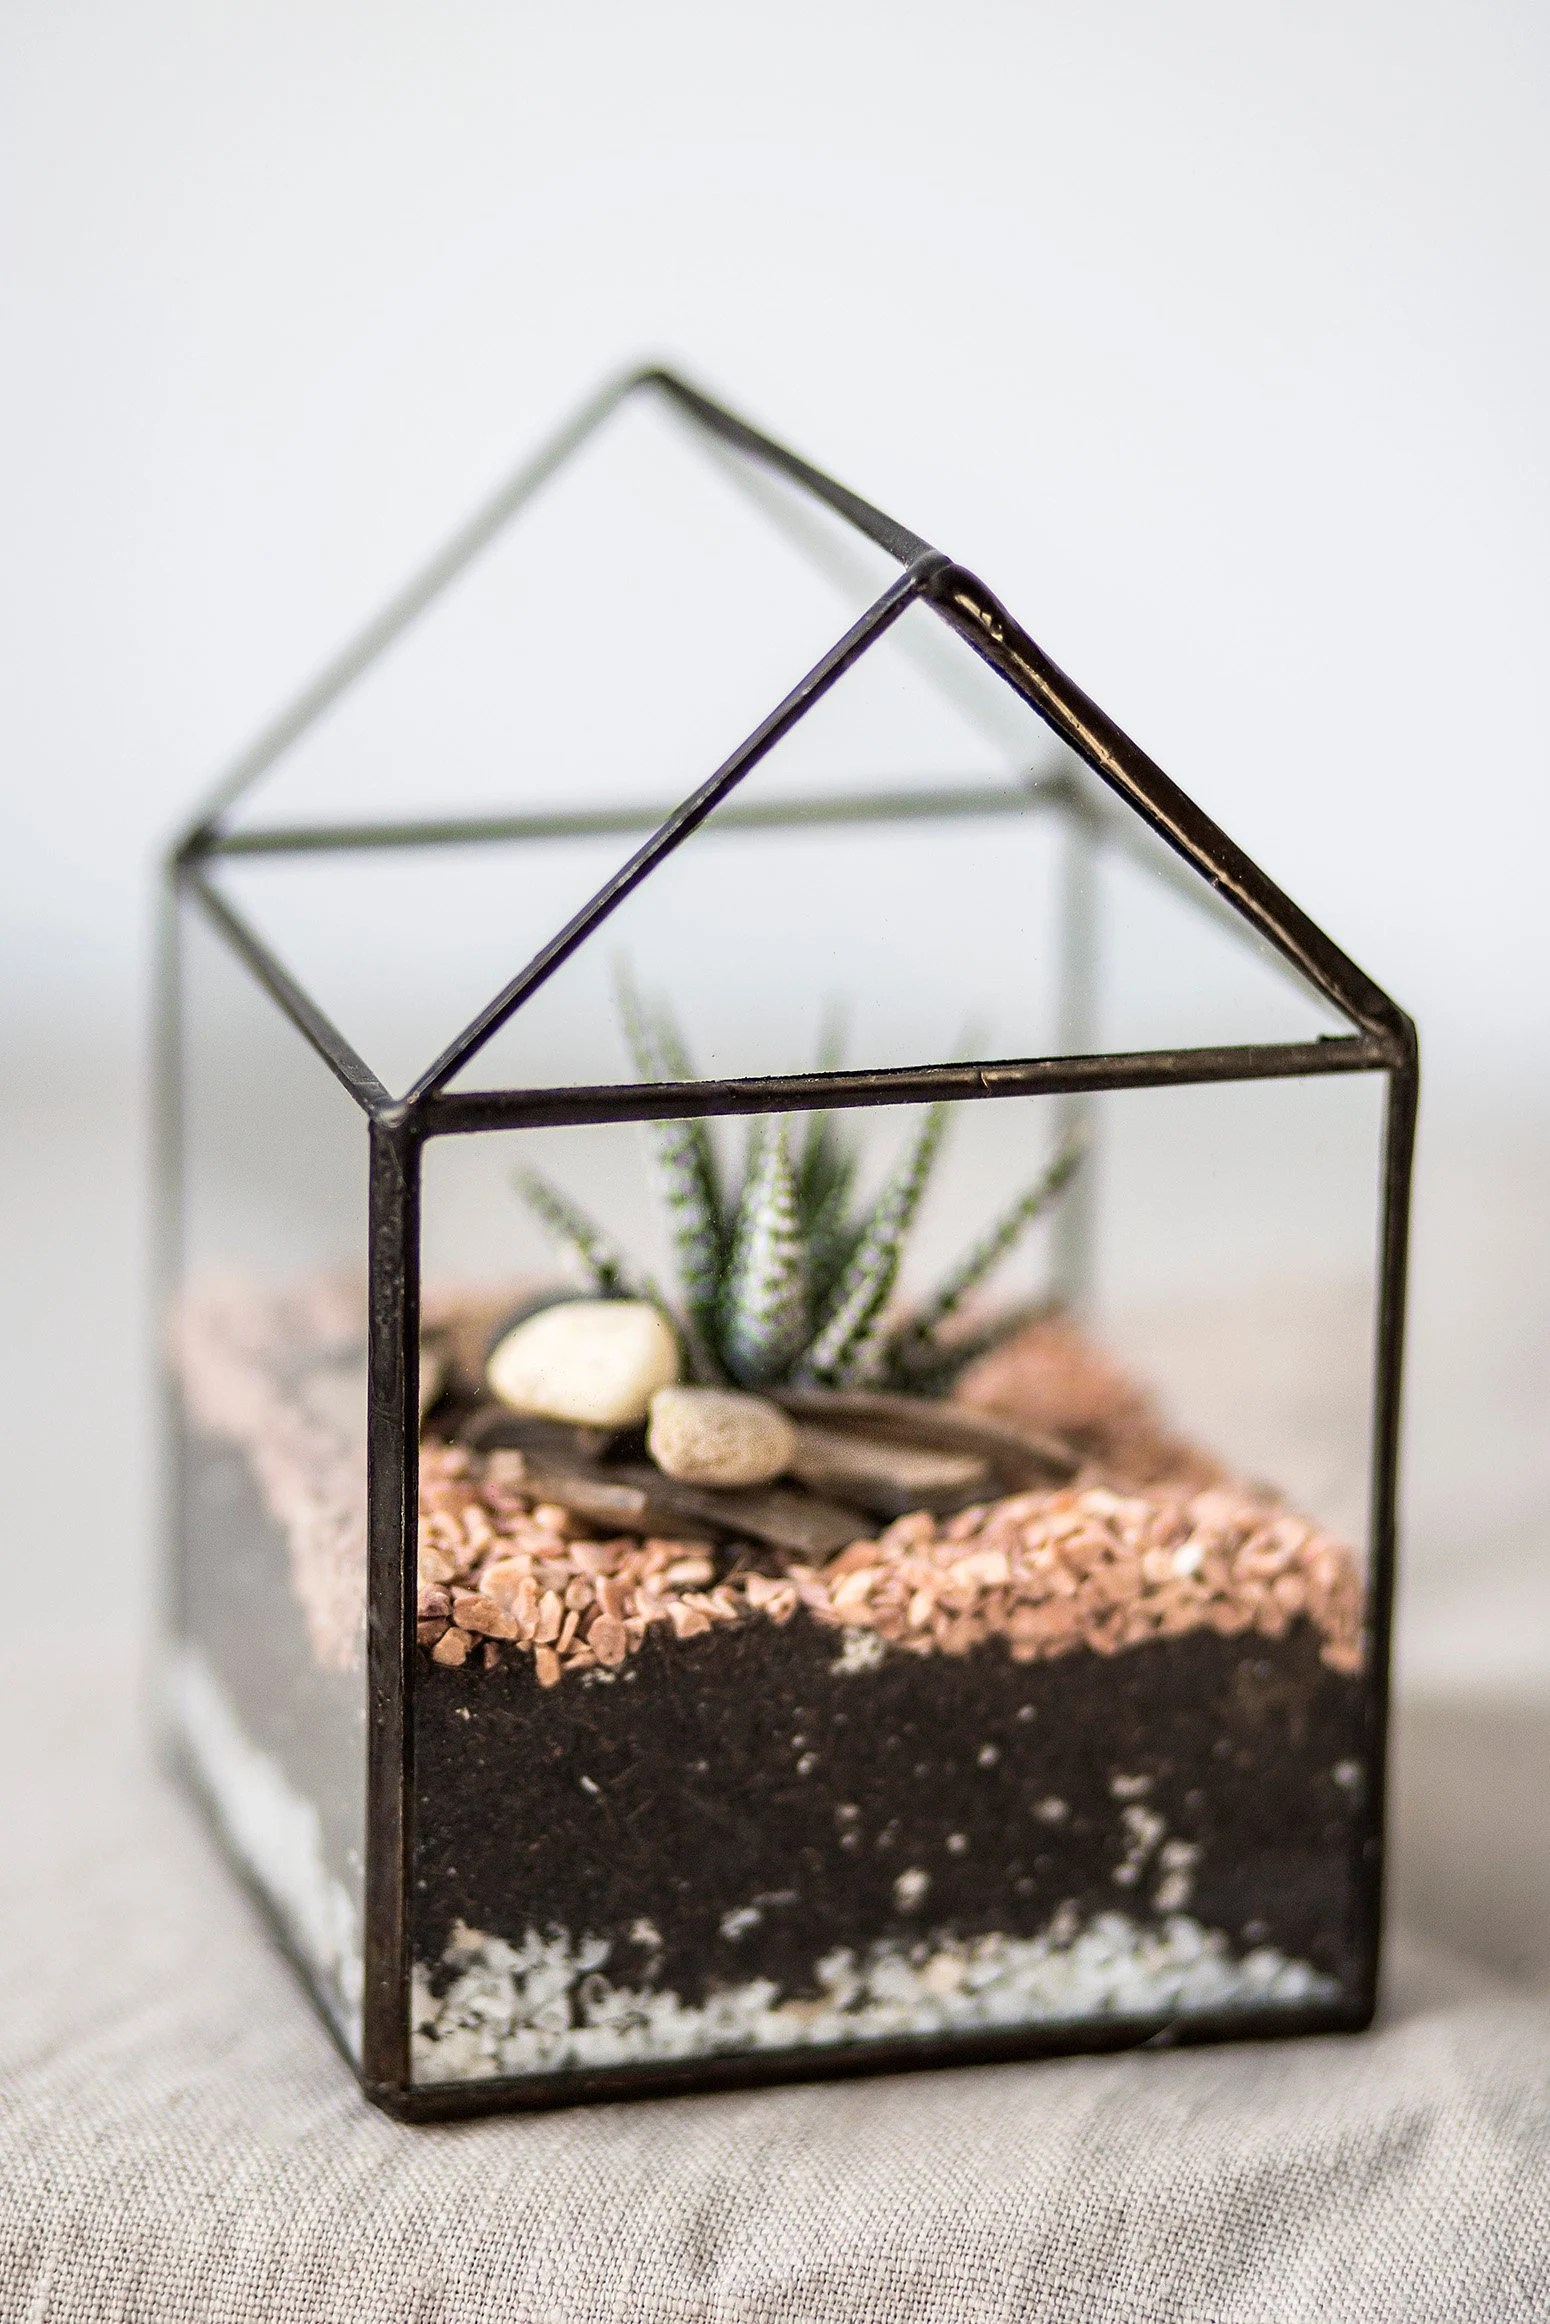 Indoor Gewächshaus Klein Little Glass House Special For Cactus Air Plants Or Candles